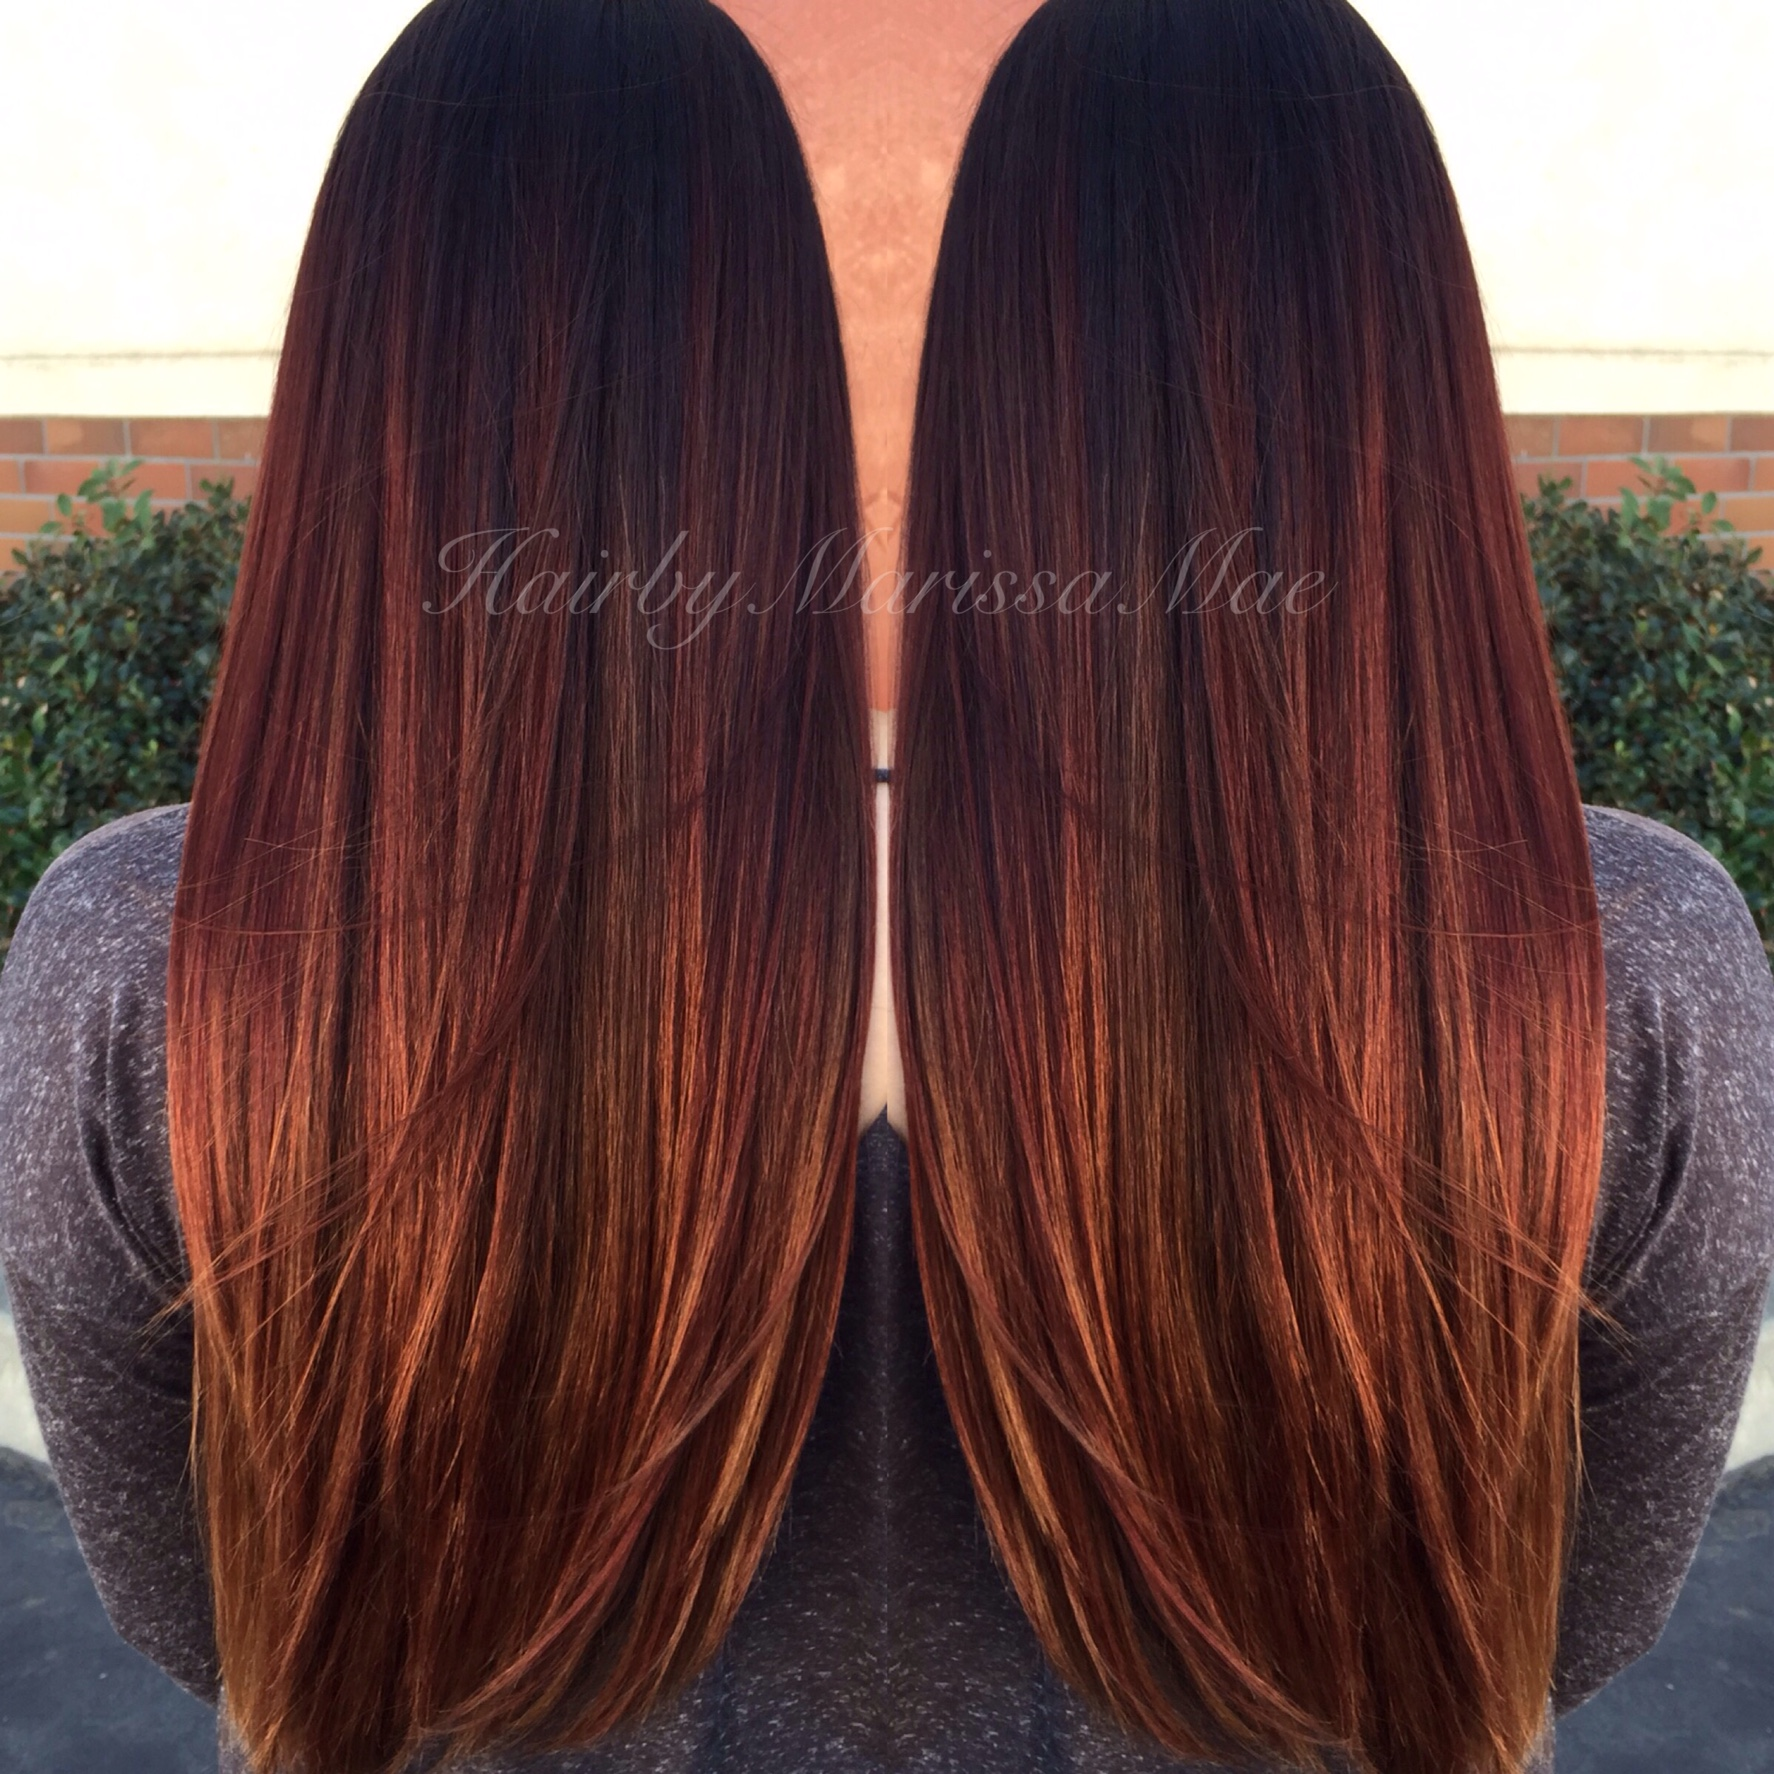 Marissa Maes Red And Golden Sombre Salons Direct